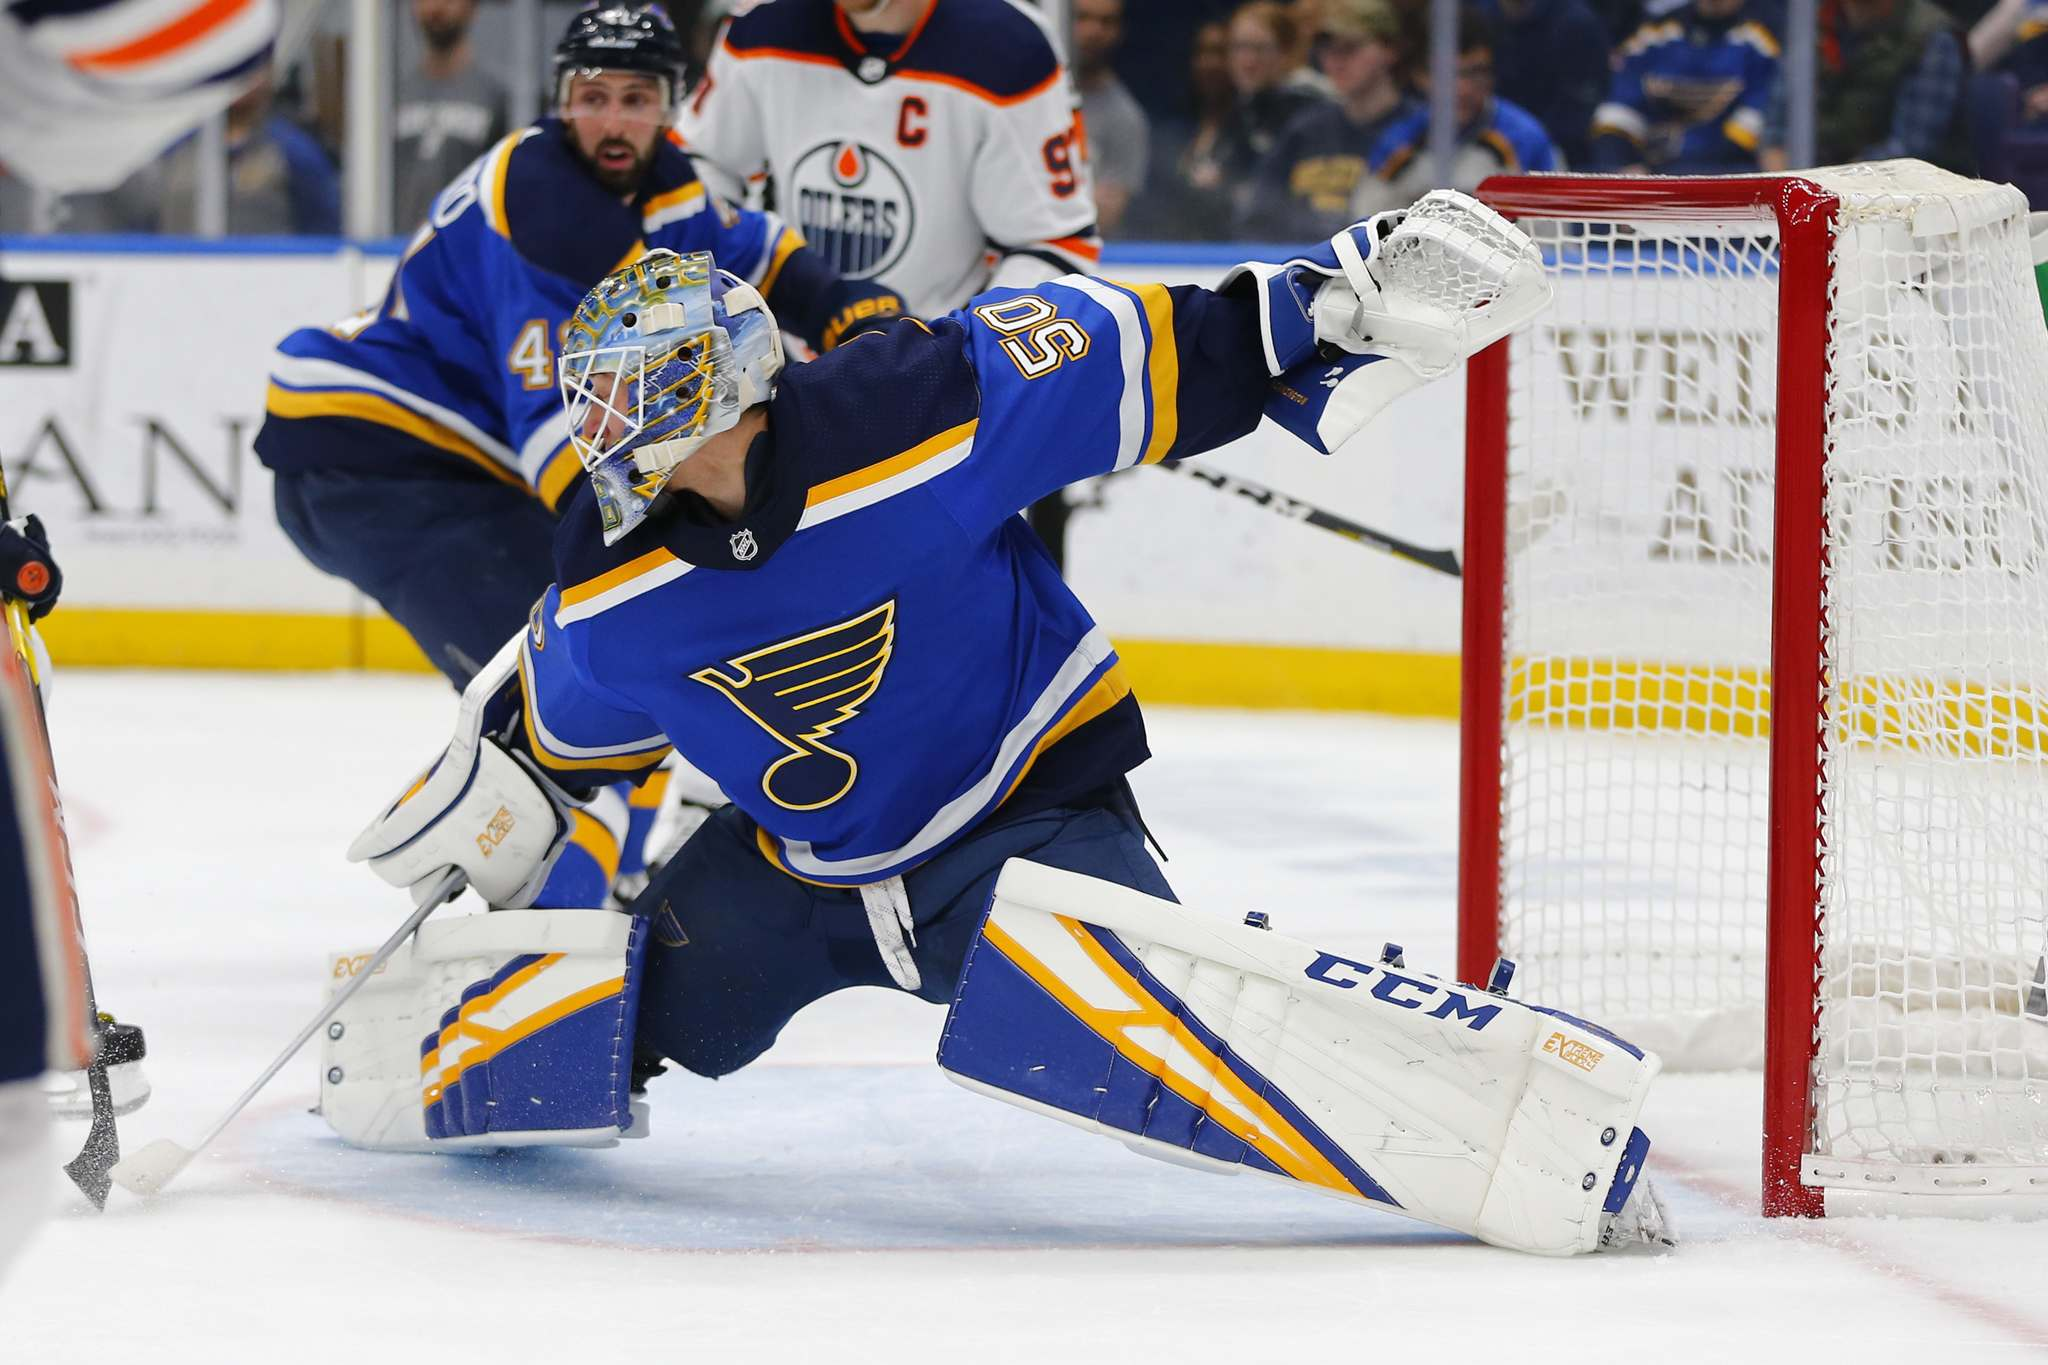 "St. Louis Blues' goalie Jordan Binnington has won 19 of 24 starts and has a 1.79 GAA and 929 S%. (Dilip Vishwanat / The Associated Press files)</p> <p>""></a><figcaption readability="